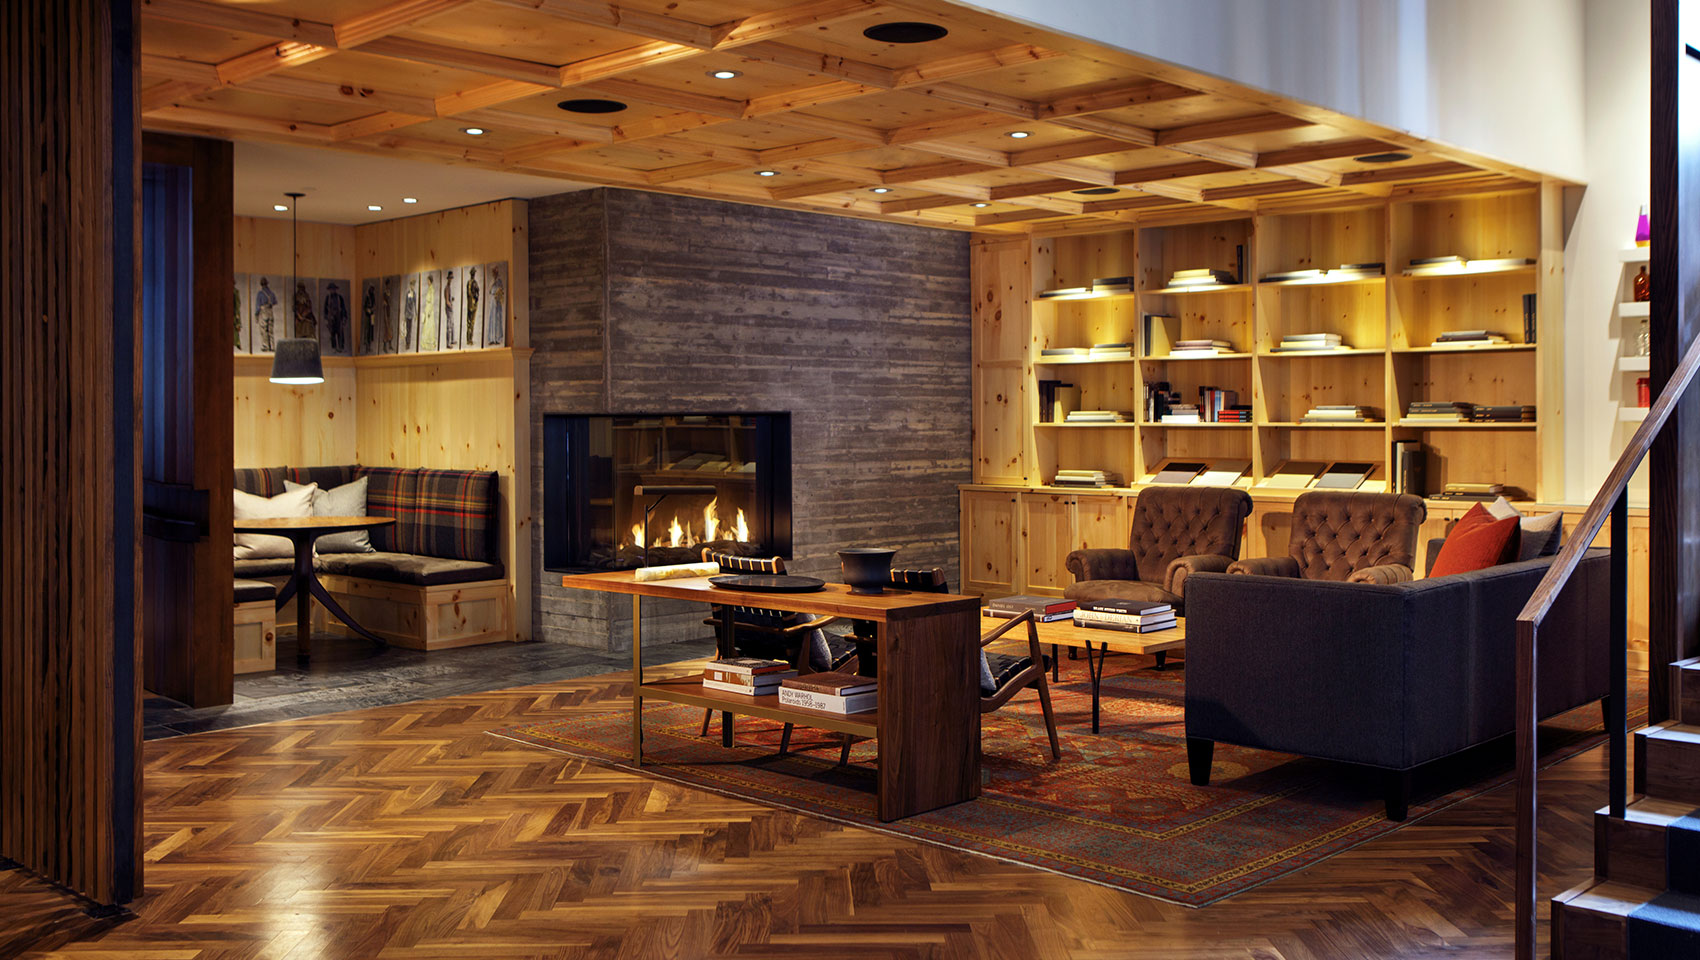 Hotel Born Denver lounge fireplace